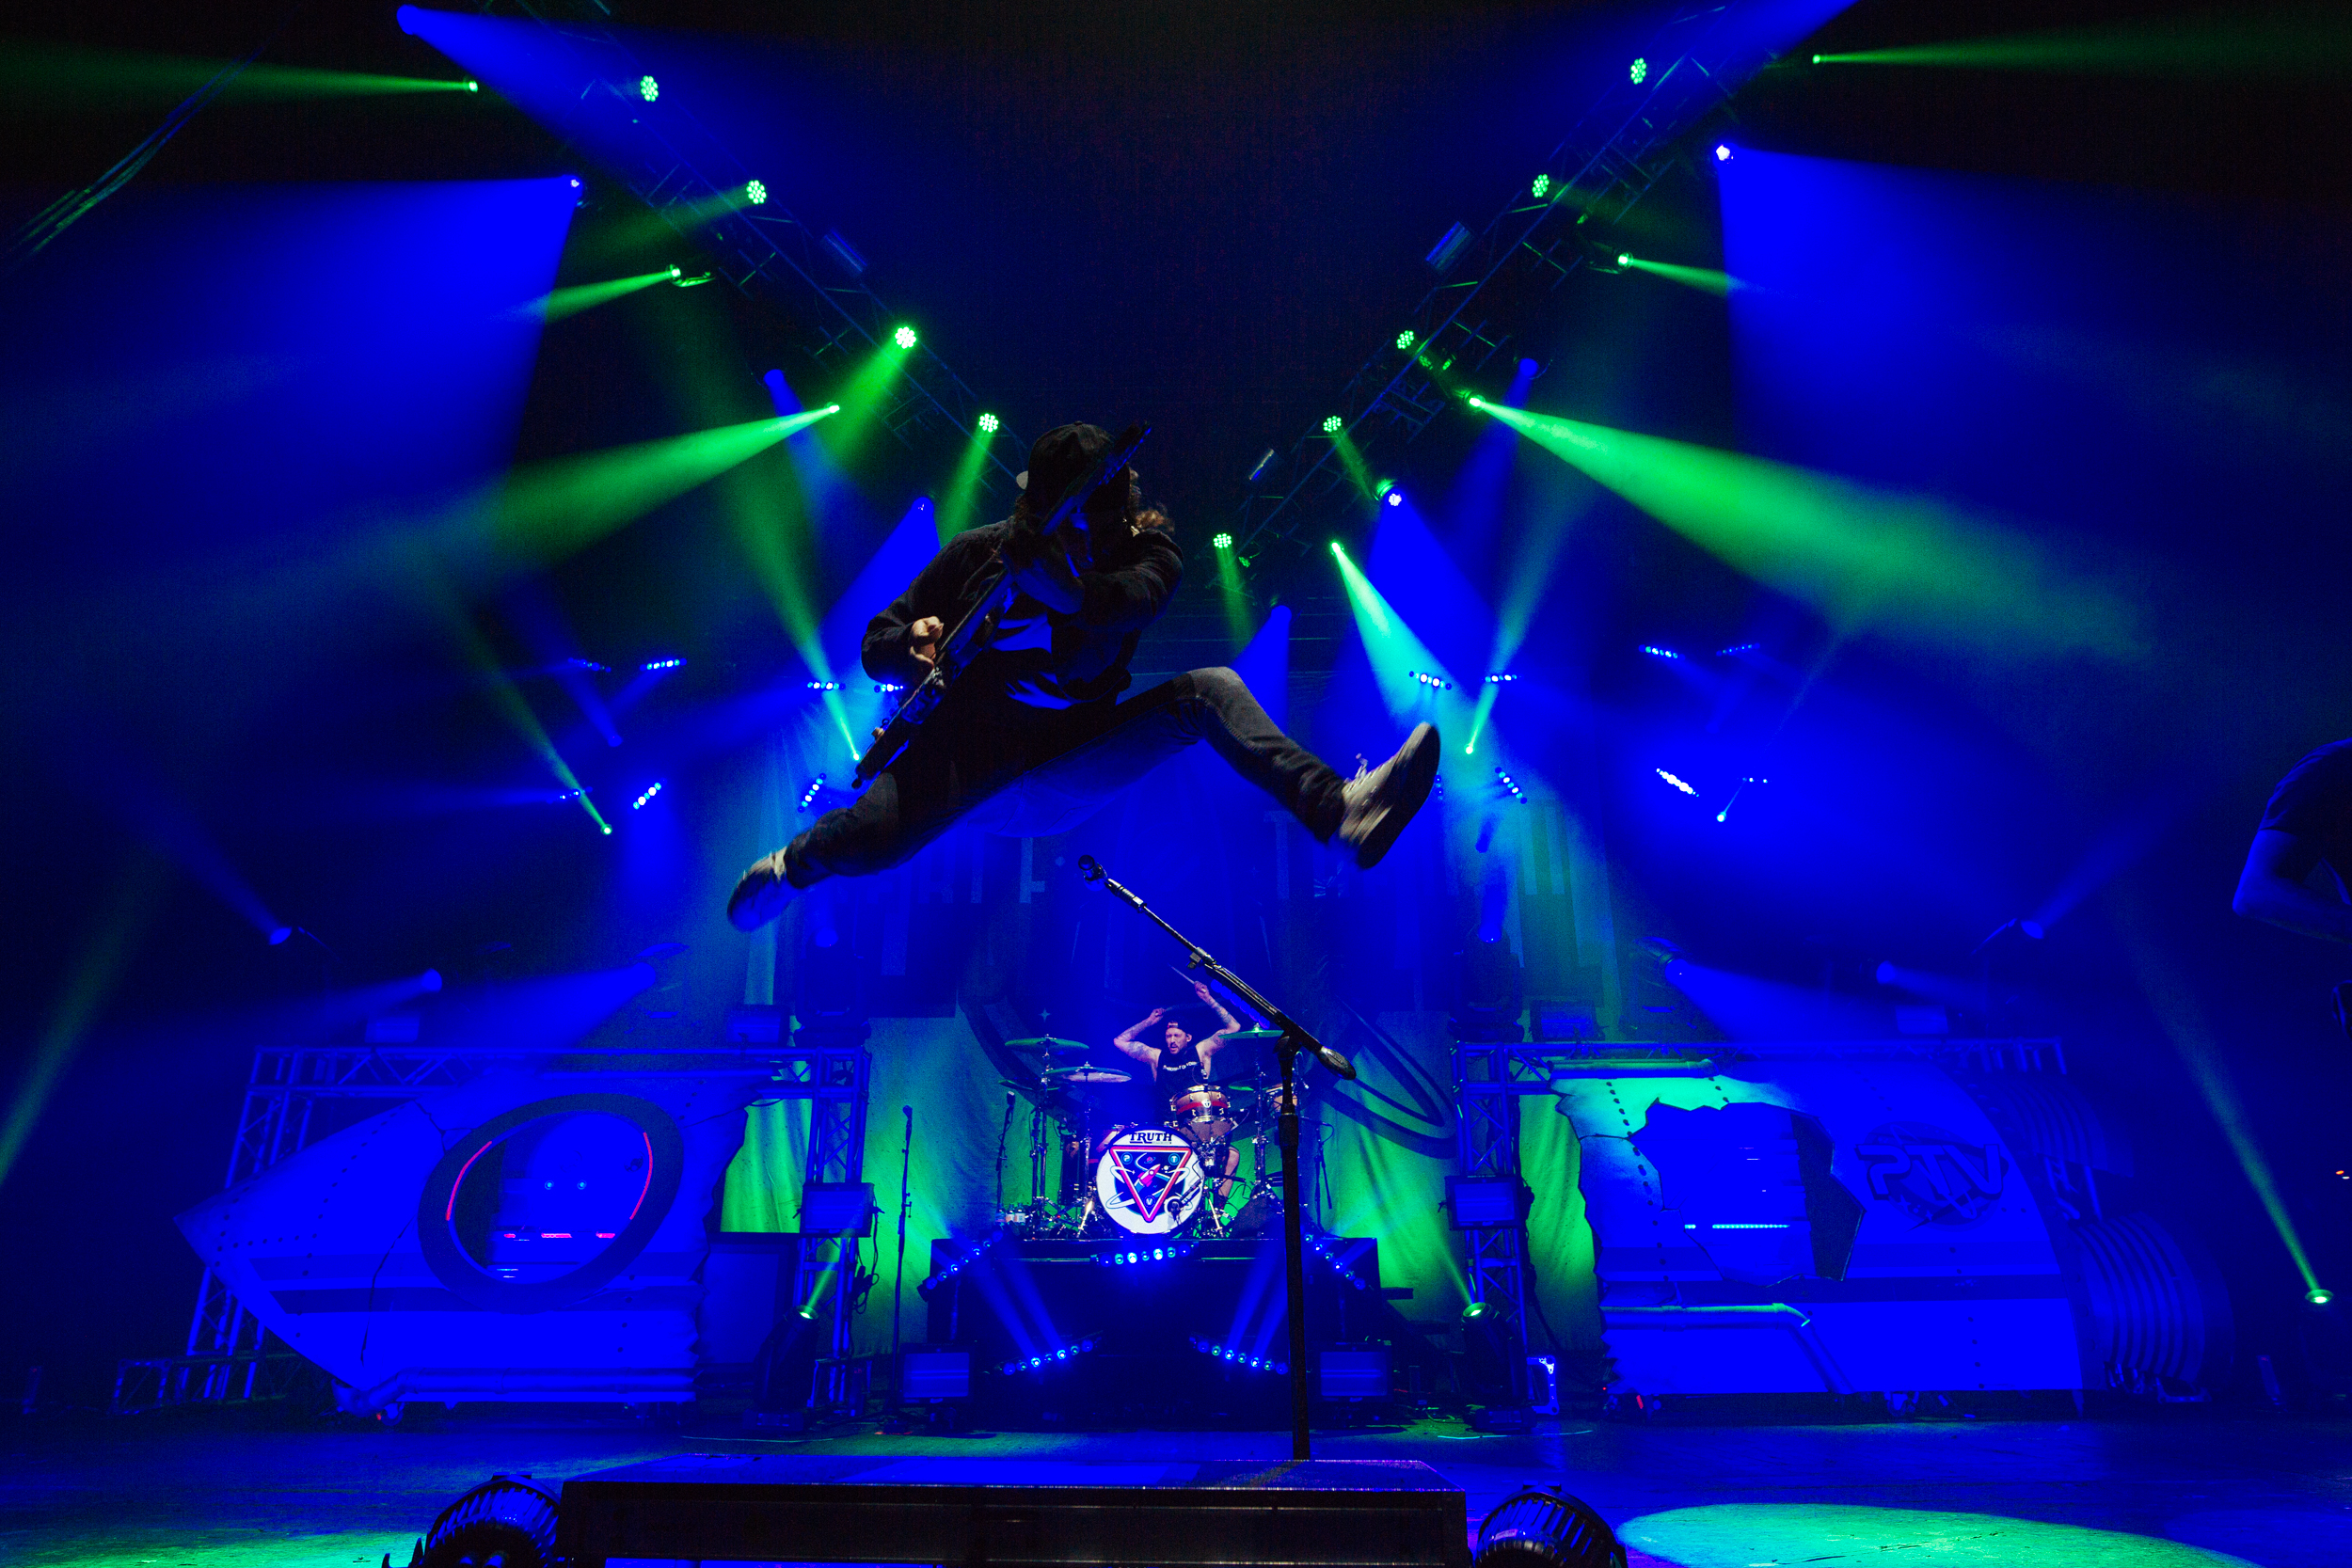 Avolites powers astronomical lighting for Pierce the Veil